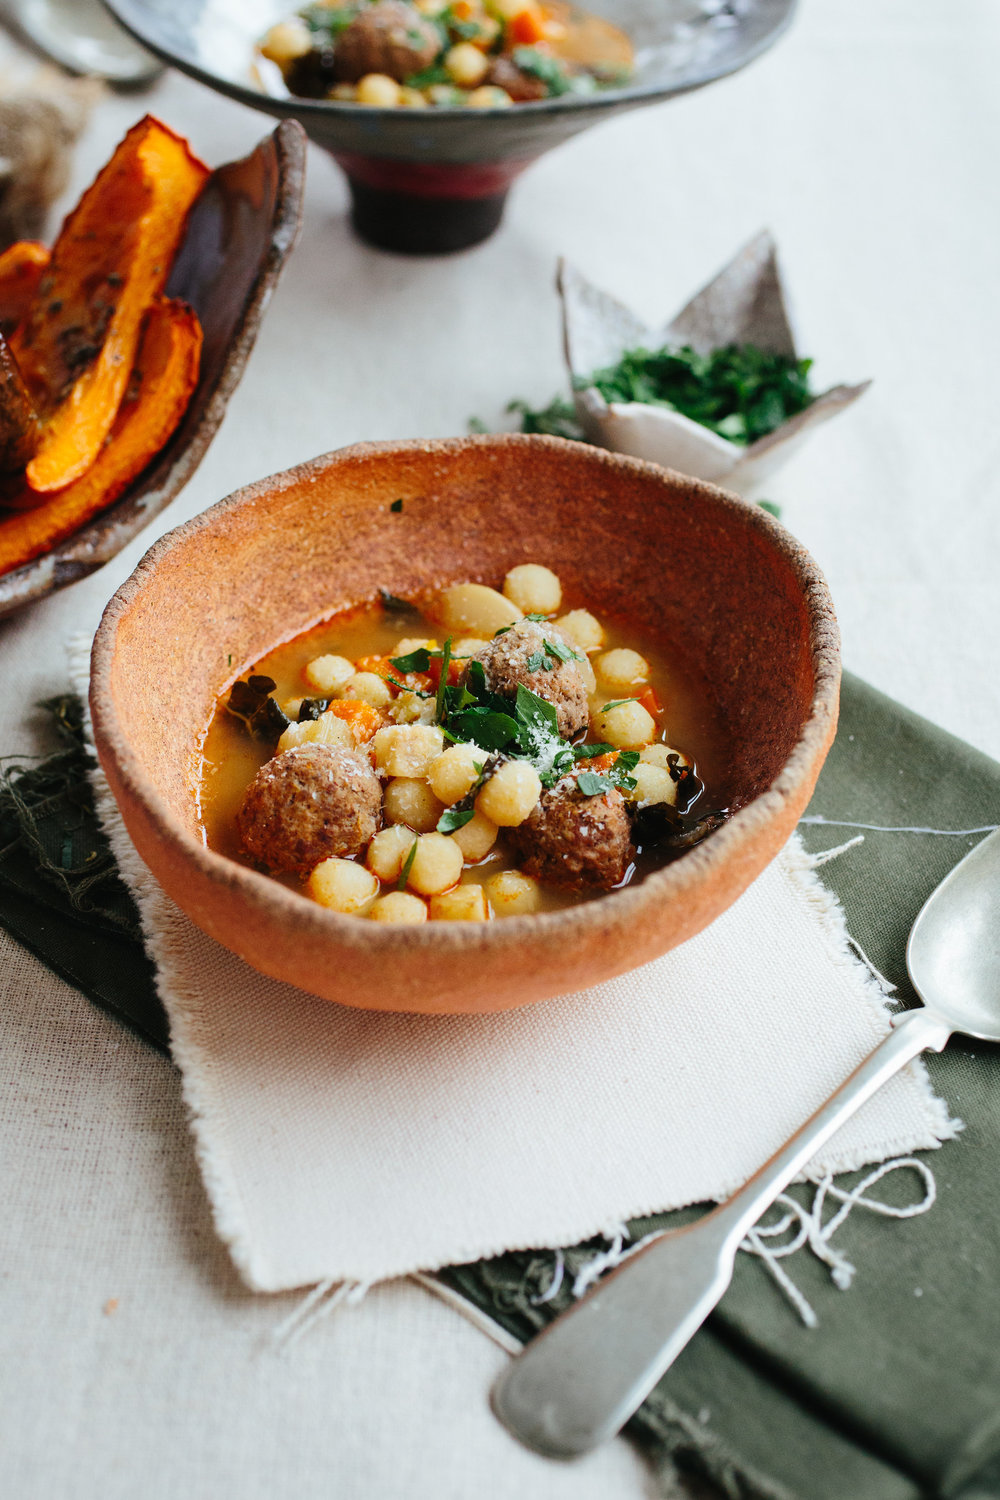 "Couscous No.6 'Mamie"" in a vegetable soup with lamb meatballs.  Photography: Christine Han, Ceramics: Shino Takeda"